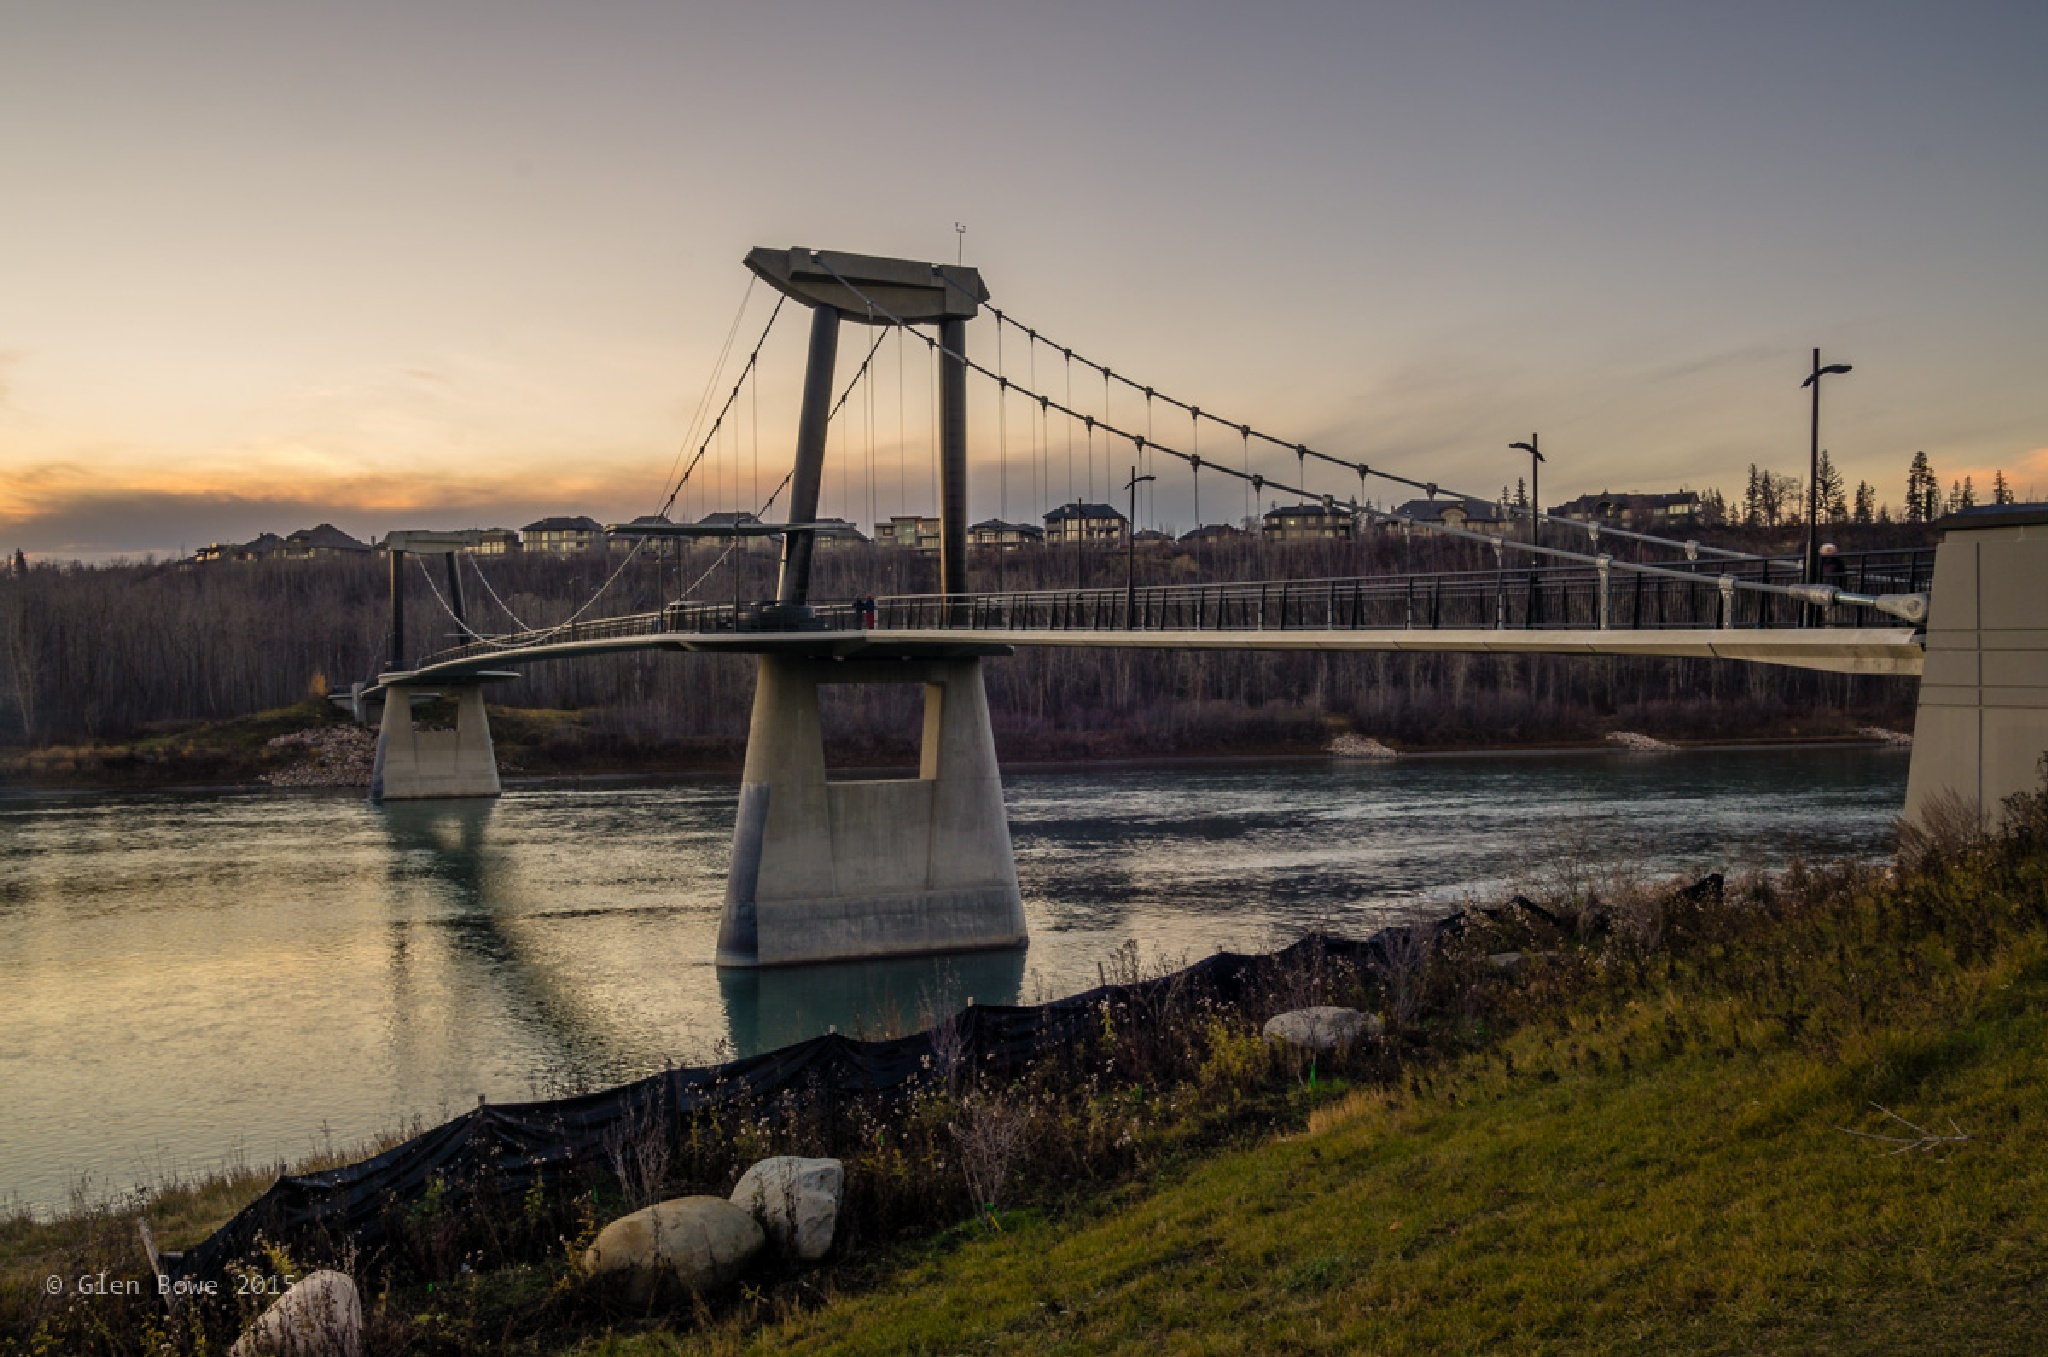 The Bridge in the Golden Hour by Glen Bowe